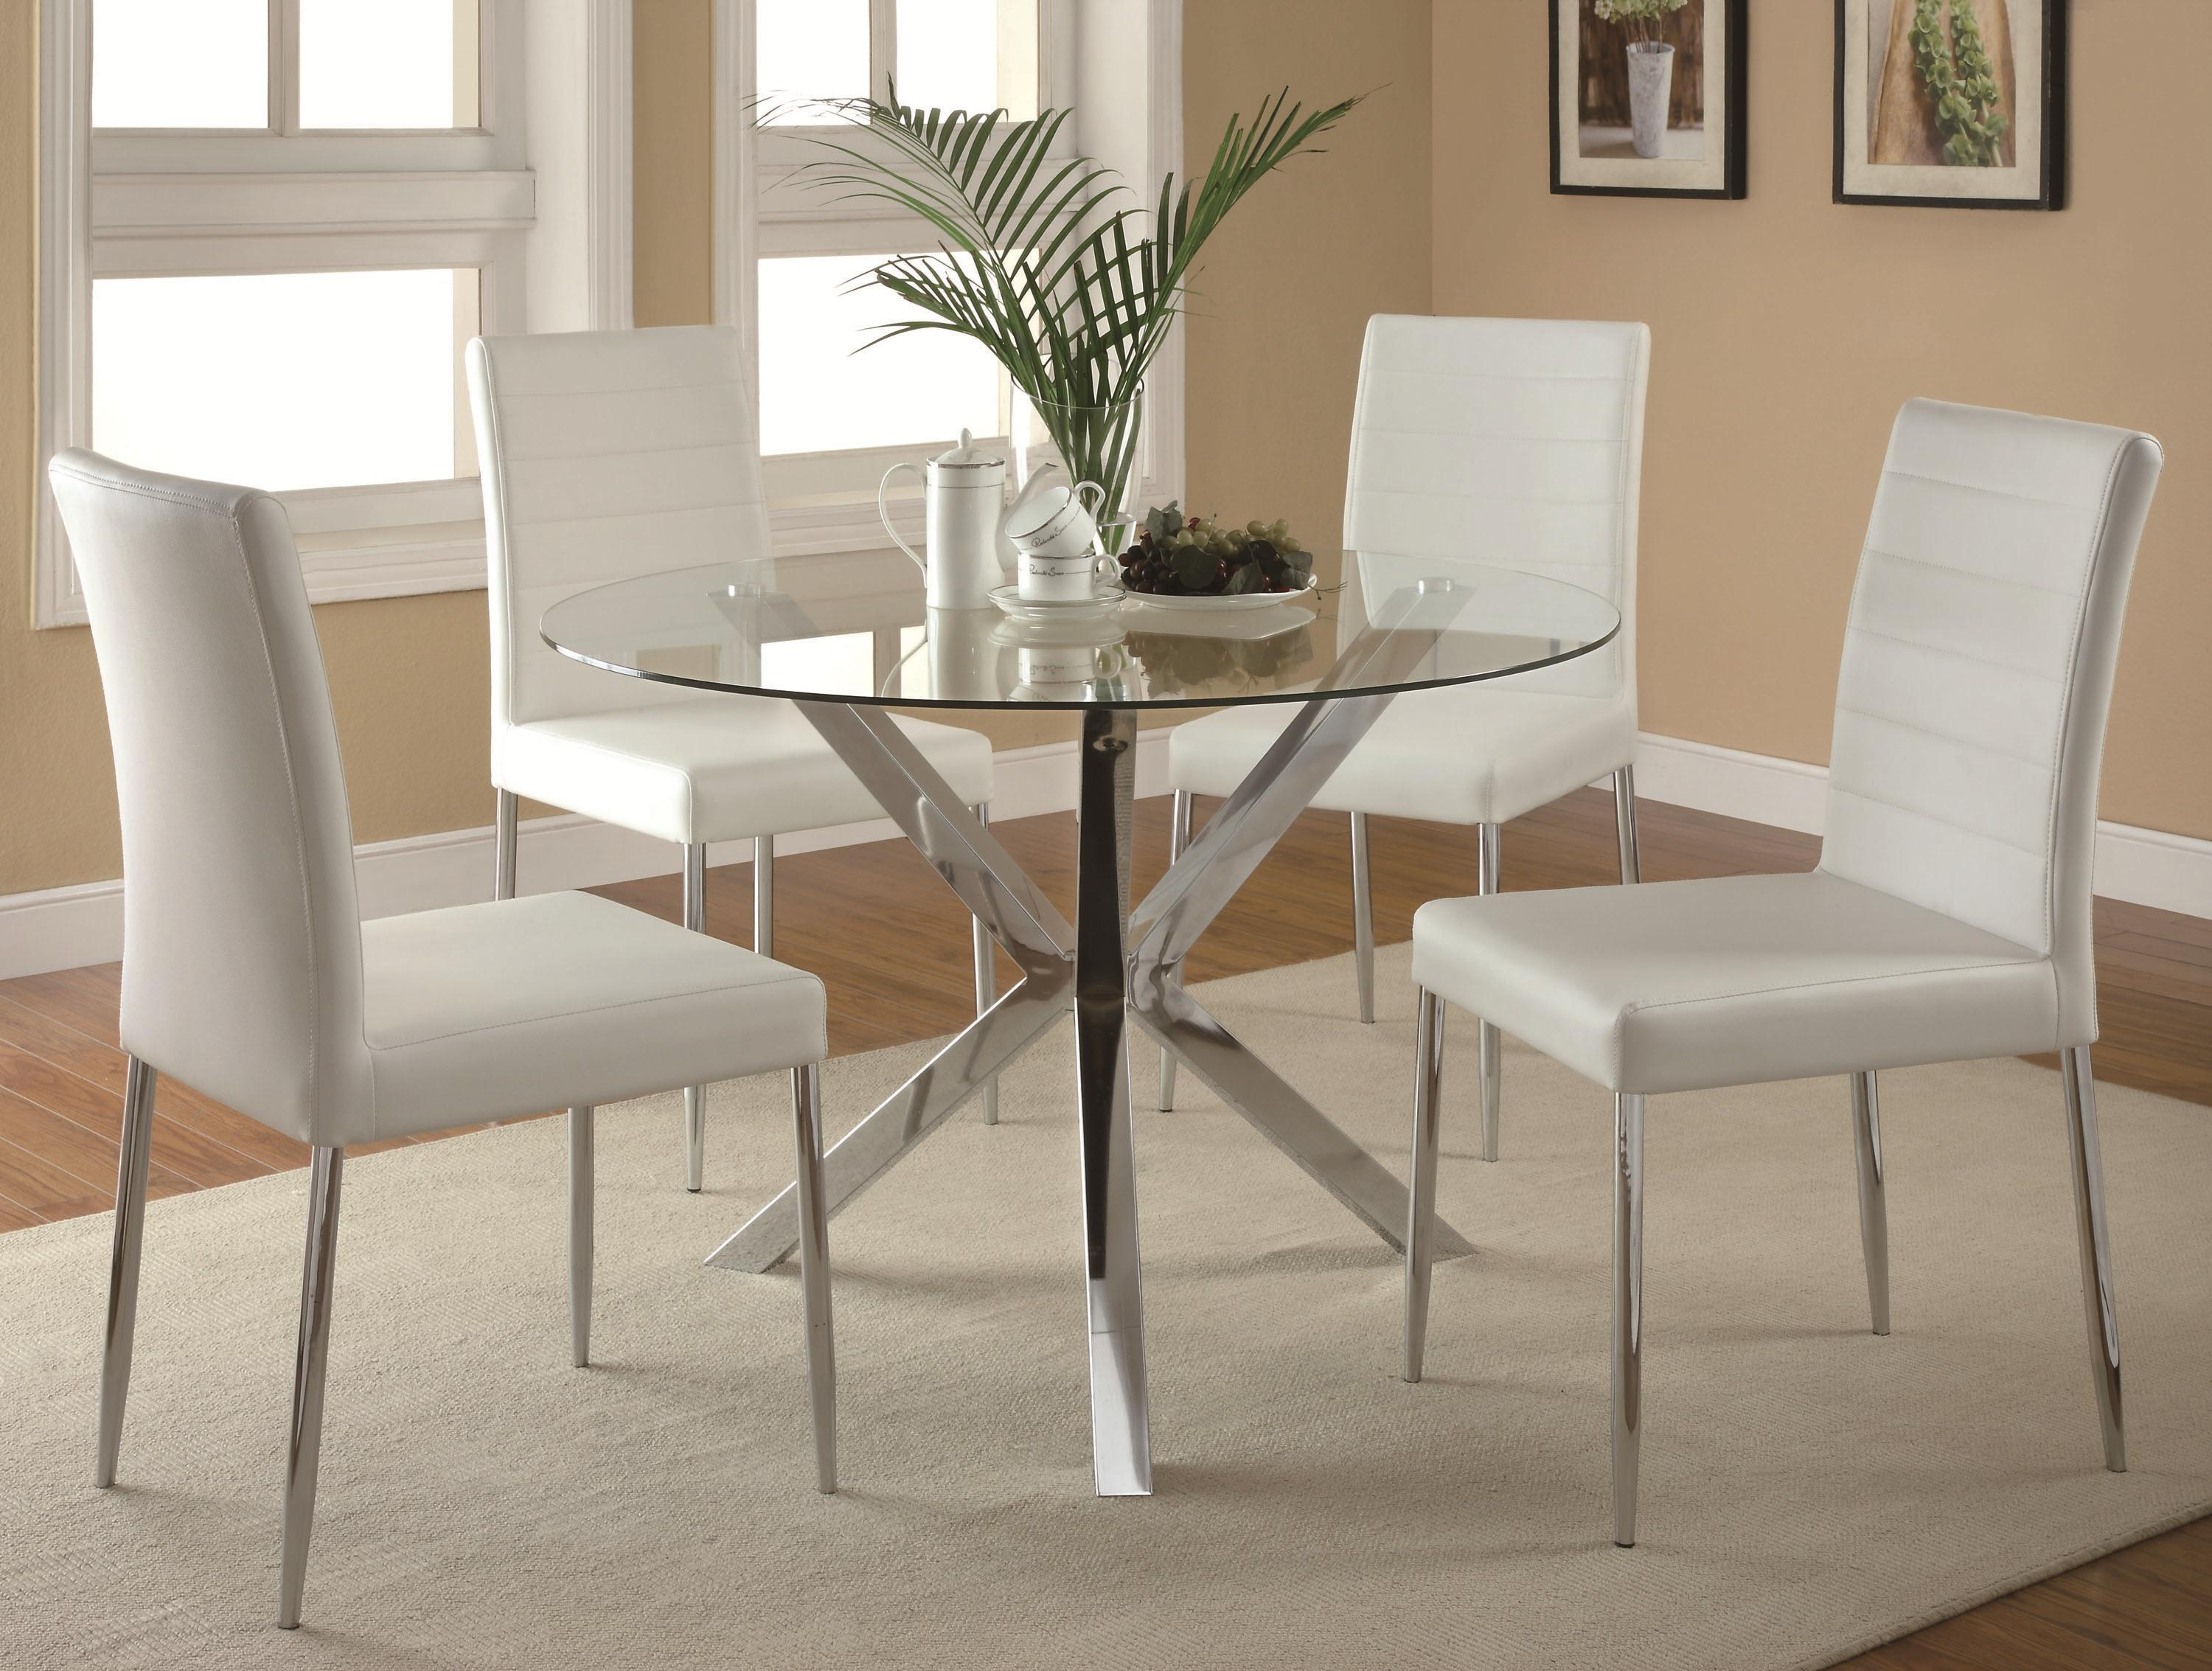 5 Piece Table U0026 Chair Set